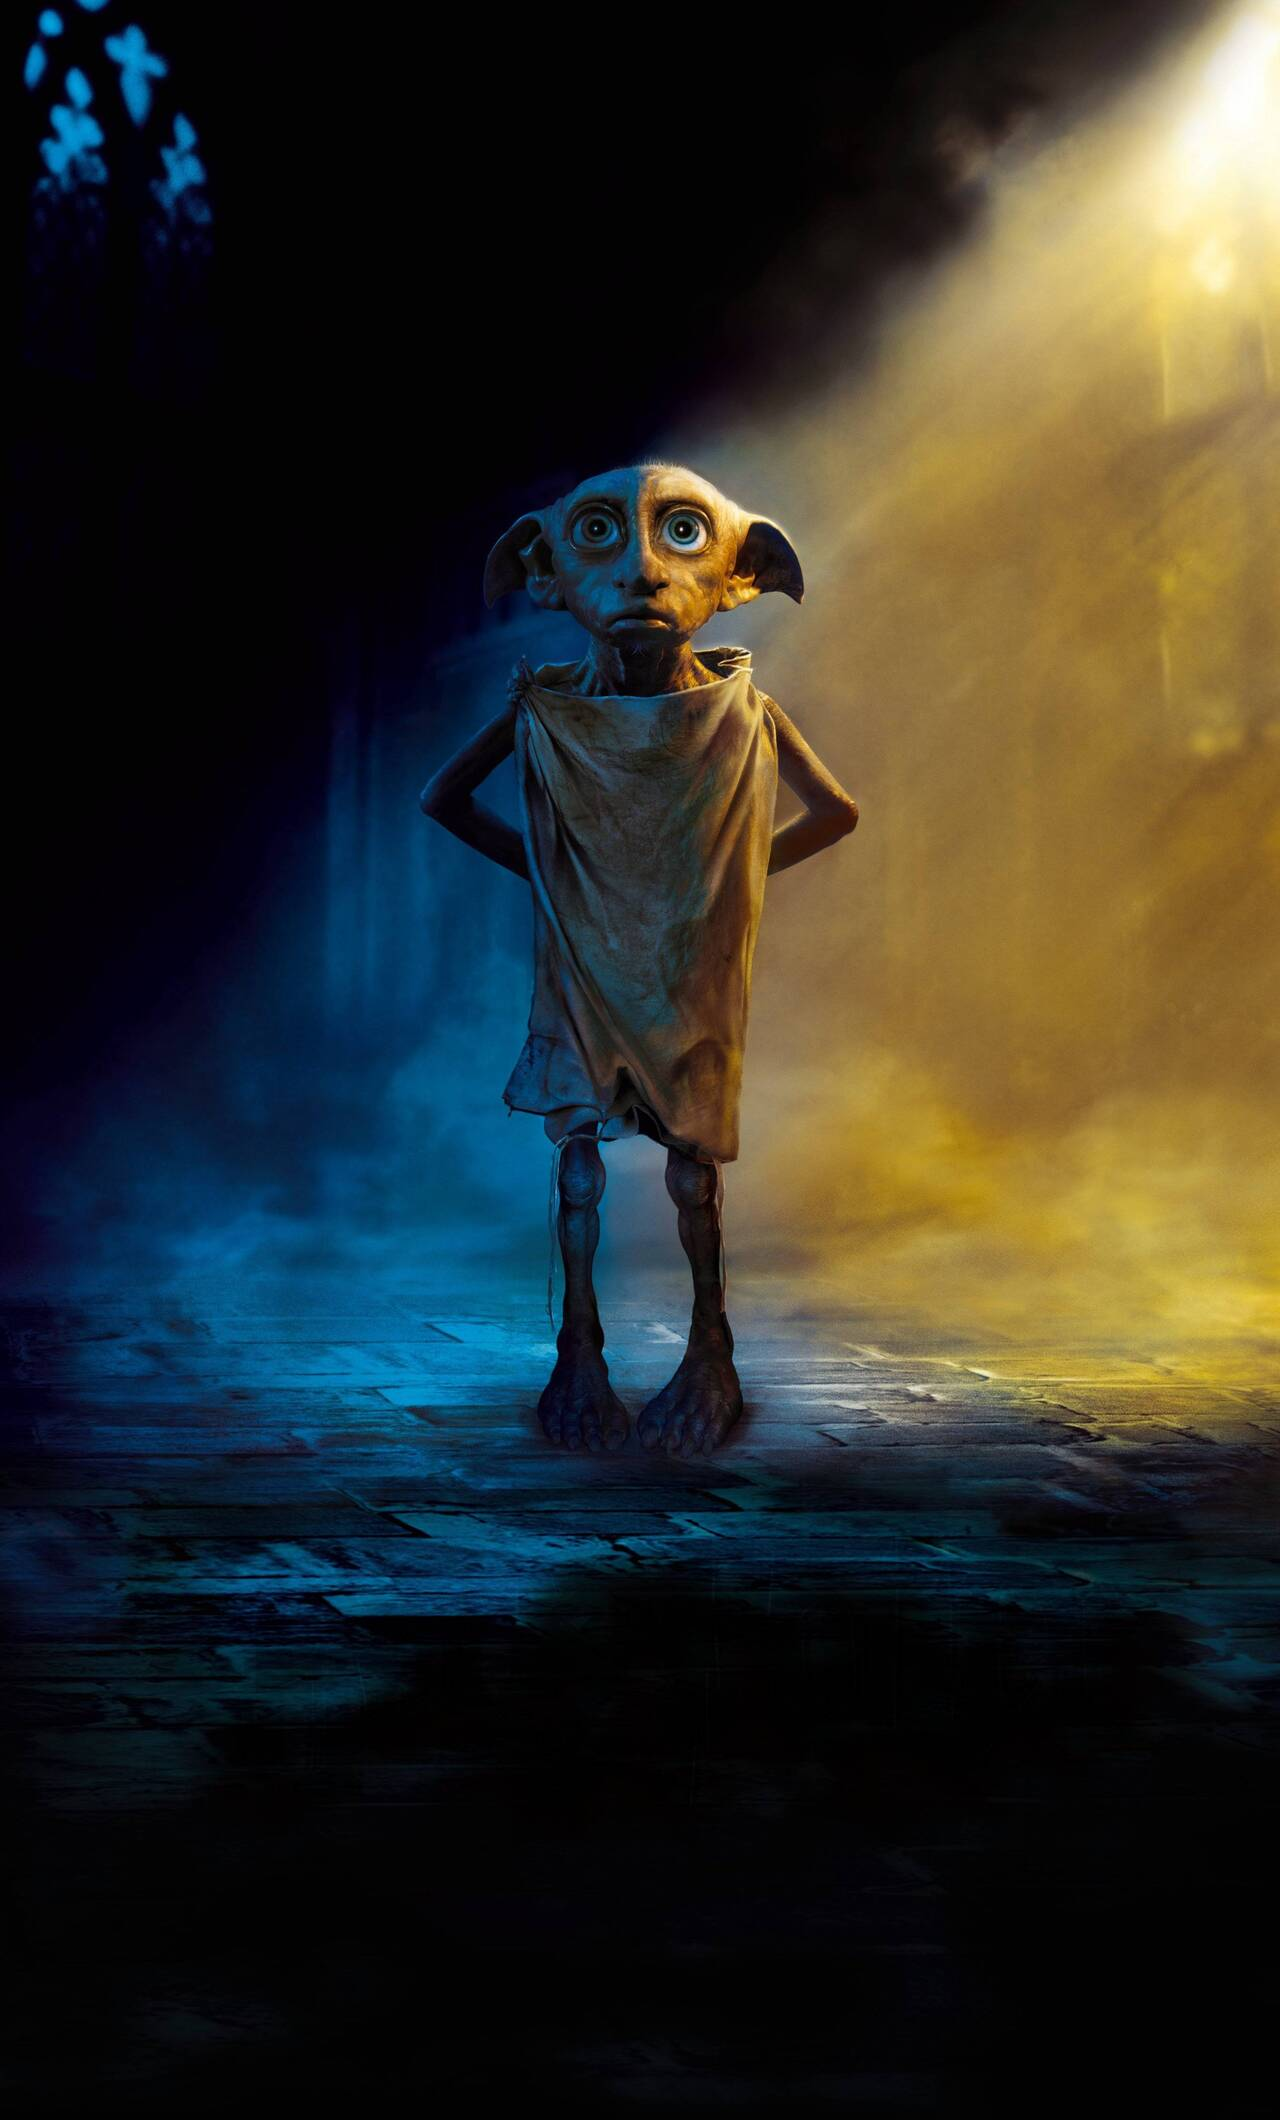 Simple Wallpaper Harry Potter Iphone 6 - dobby-the-house-elf-harry-potter-a9-1280x2120  Pic_295062.jpg